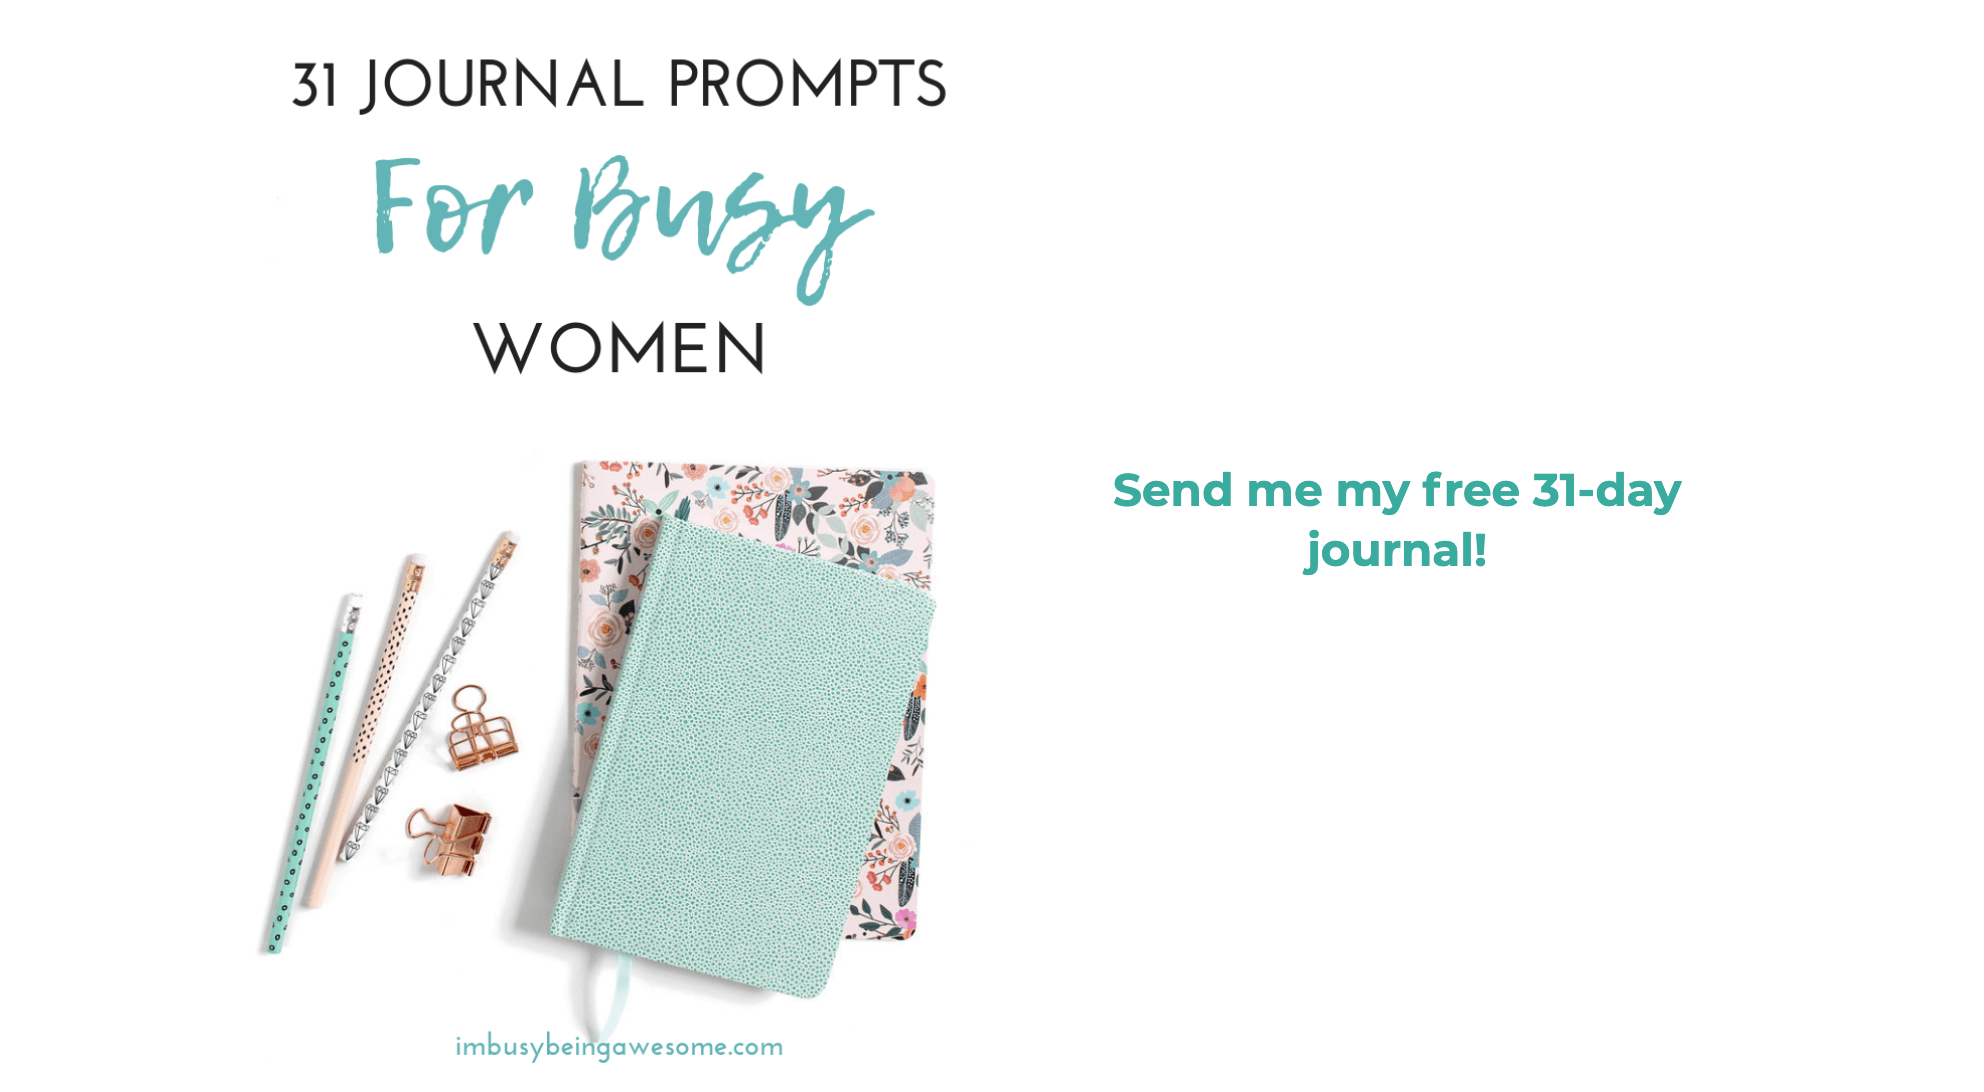 3 ways to create the life you want through journaling.